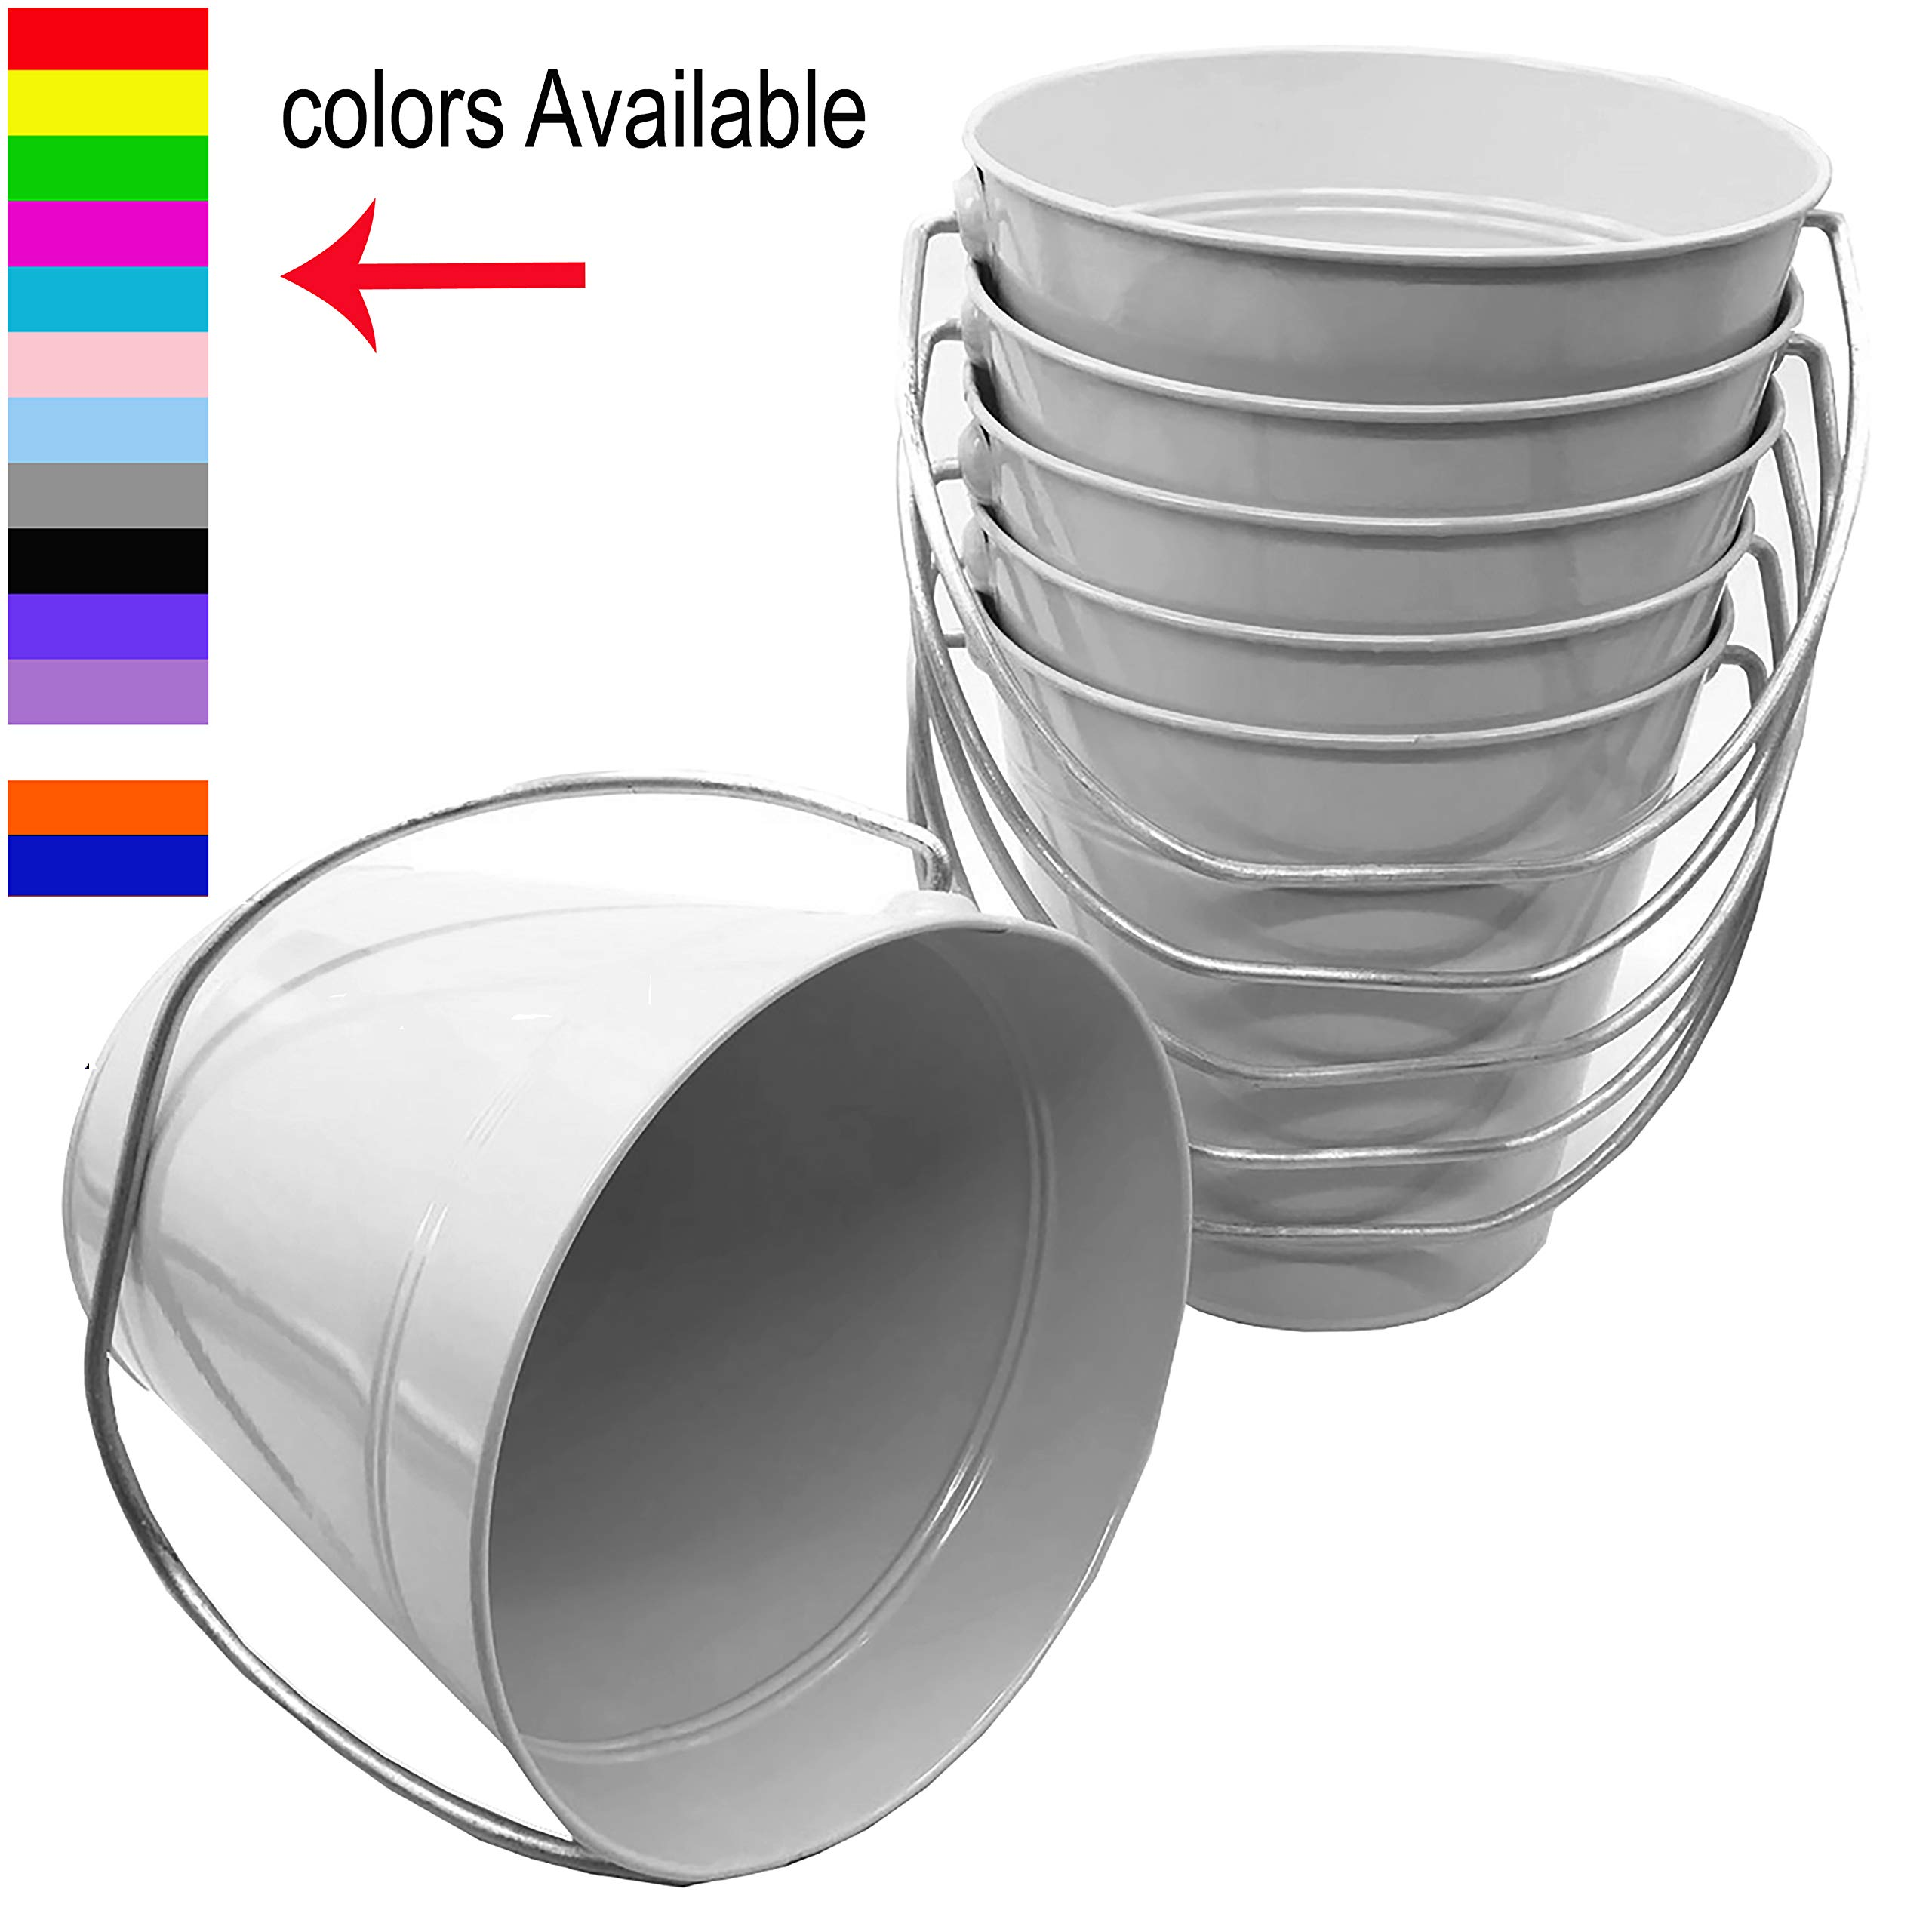 Italia 6-Pack Metal Bucket 3.7 Quart color White Size 7.5 x 7.5''